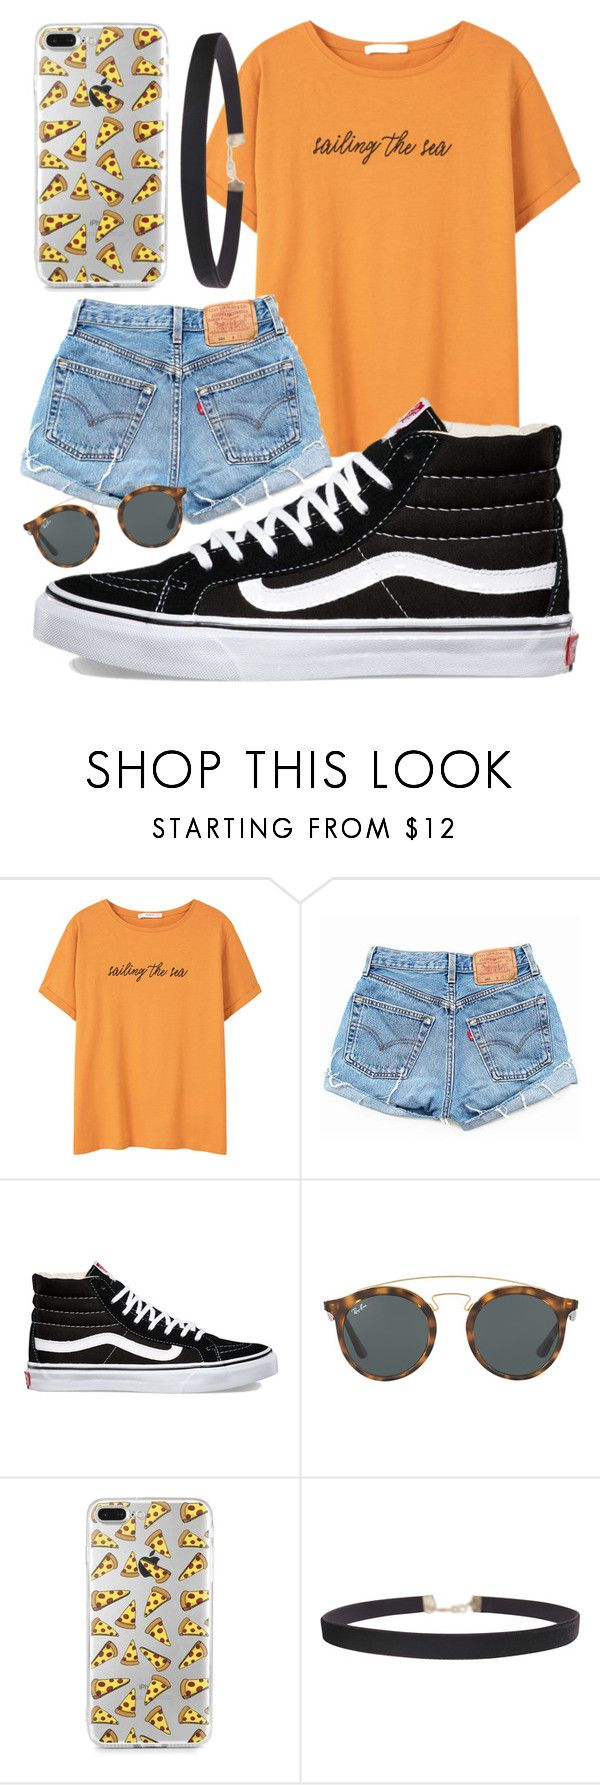 """"""""""" by jadenriley21 ❤ liked on Polyvore featuring MANGO, Levi's, Vans, Ray-Ban and Humble Chic"""